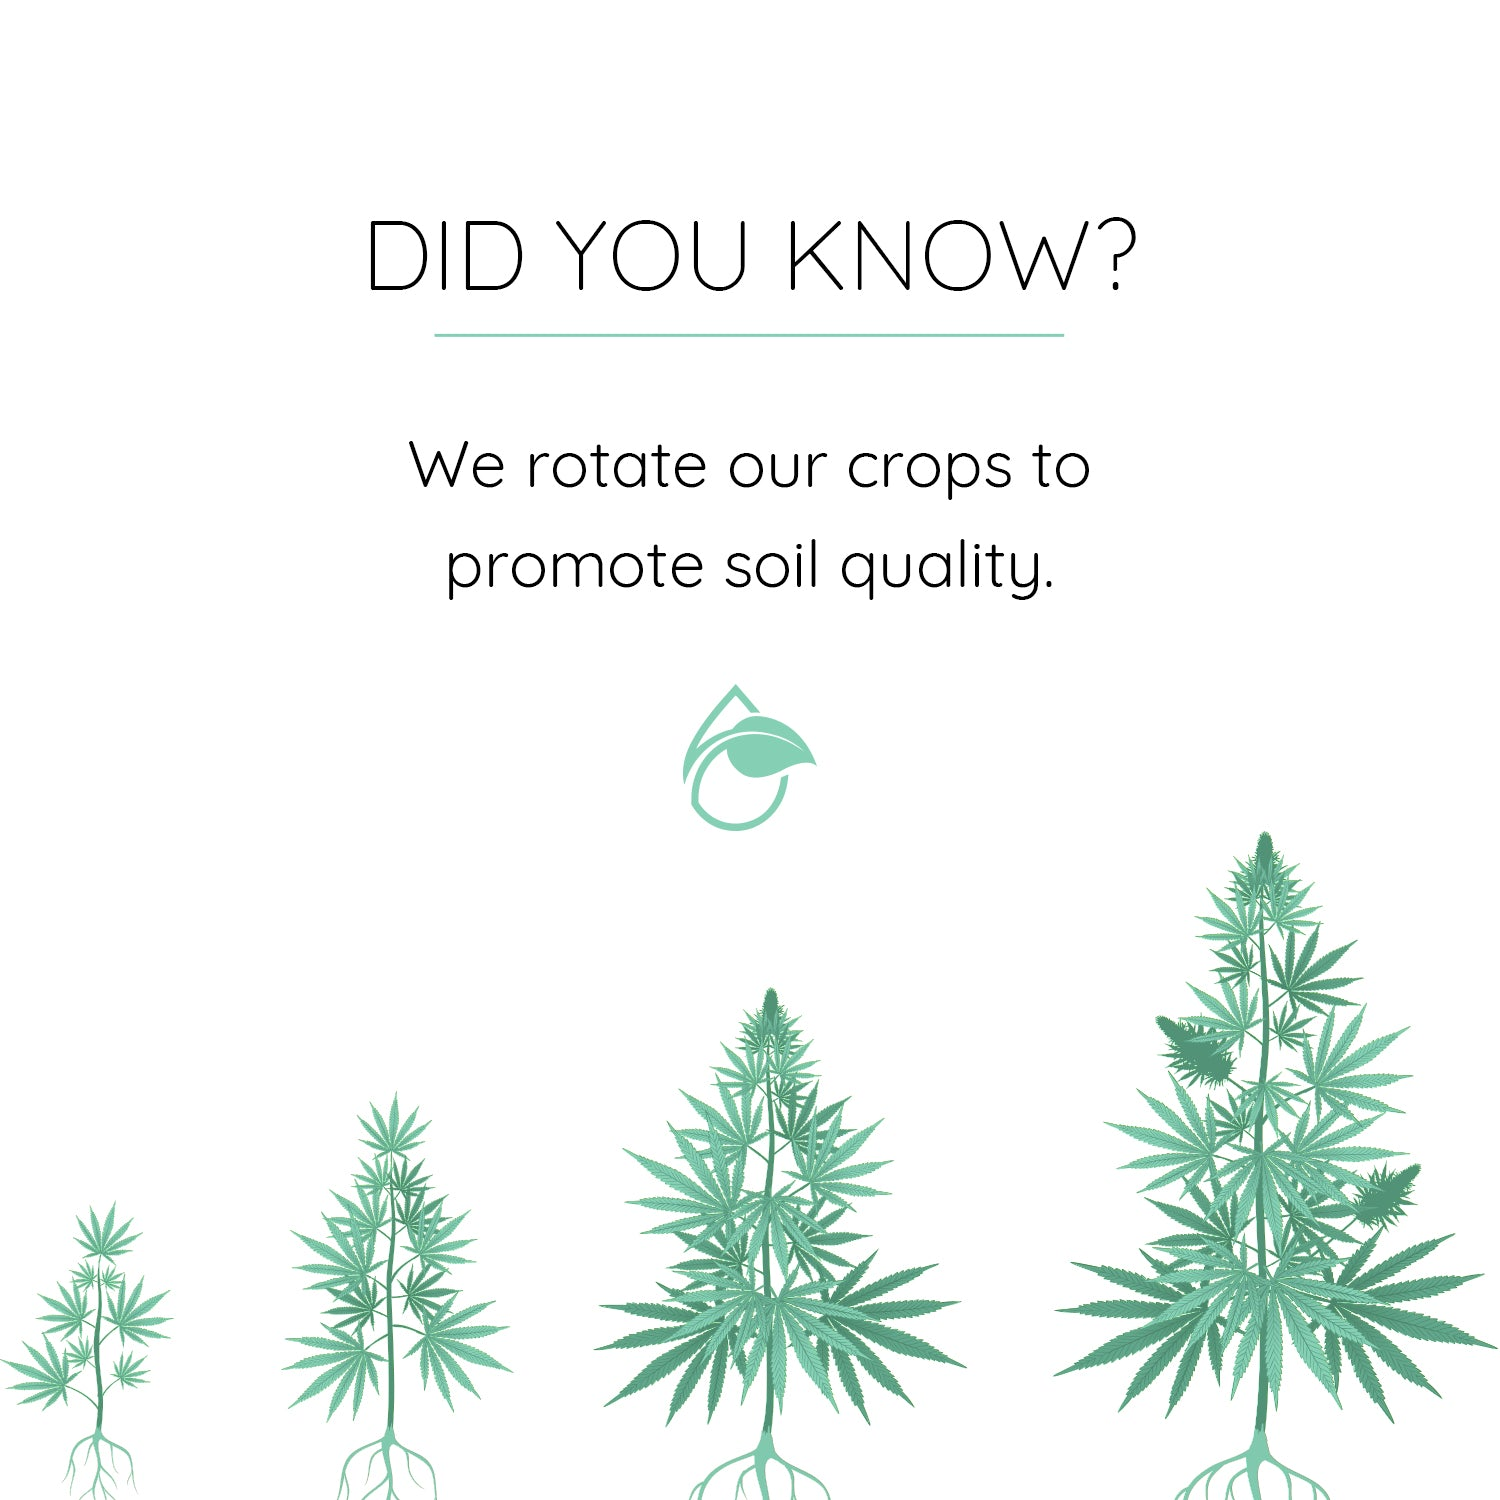 DYK - Rotate Crops